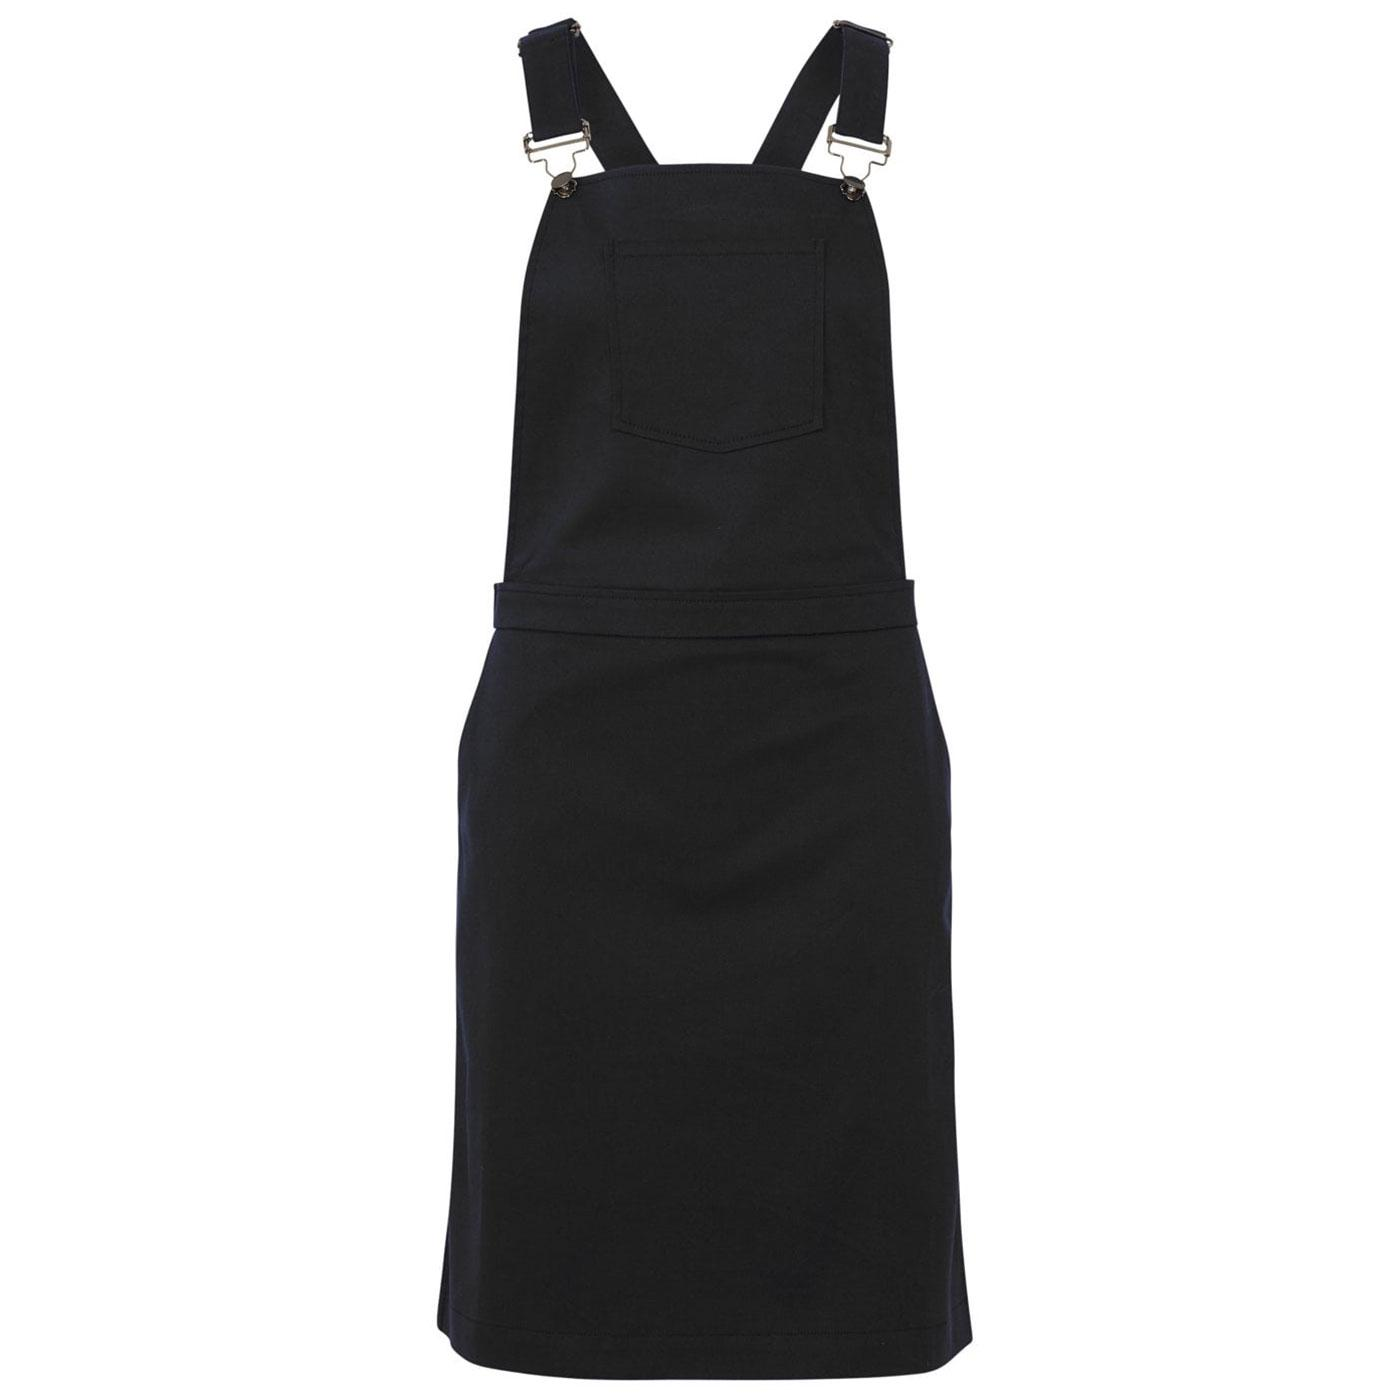 Toni SUGARHILL BOUTIQUE Retro Black Dungaree Dress